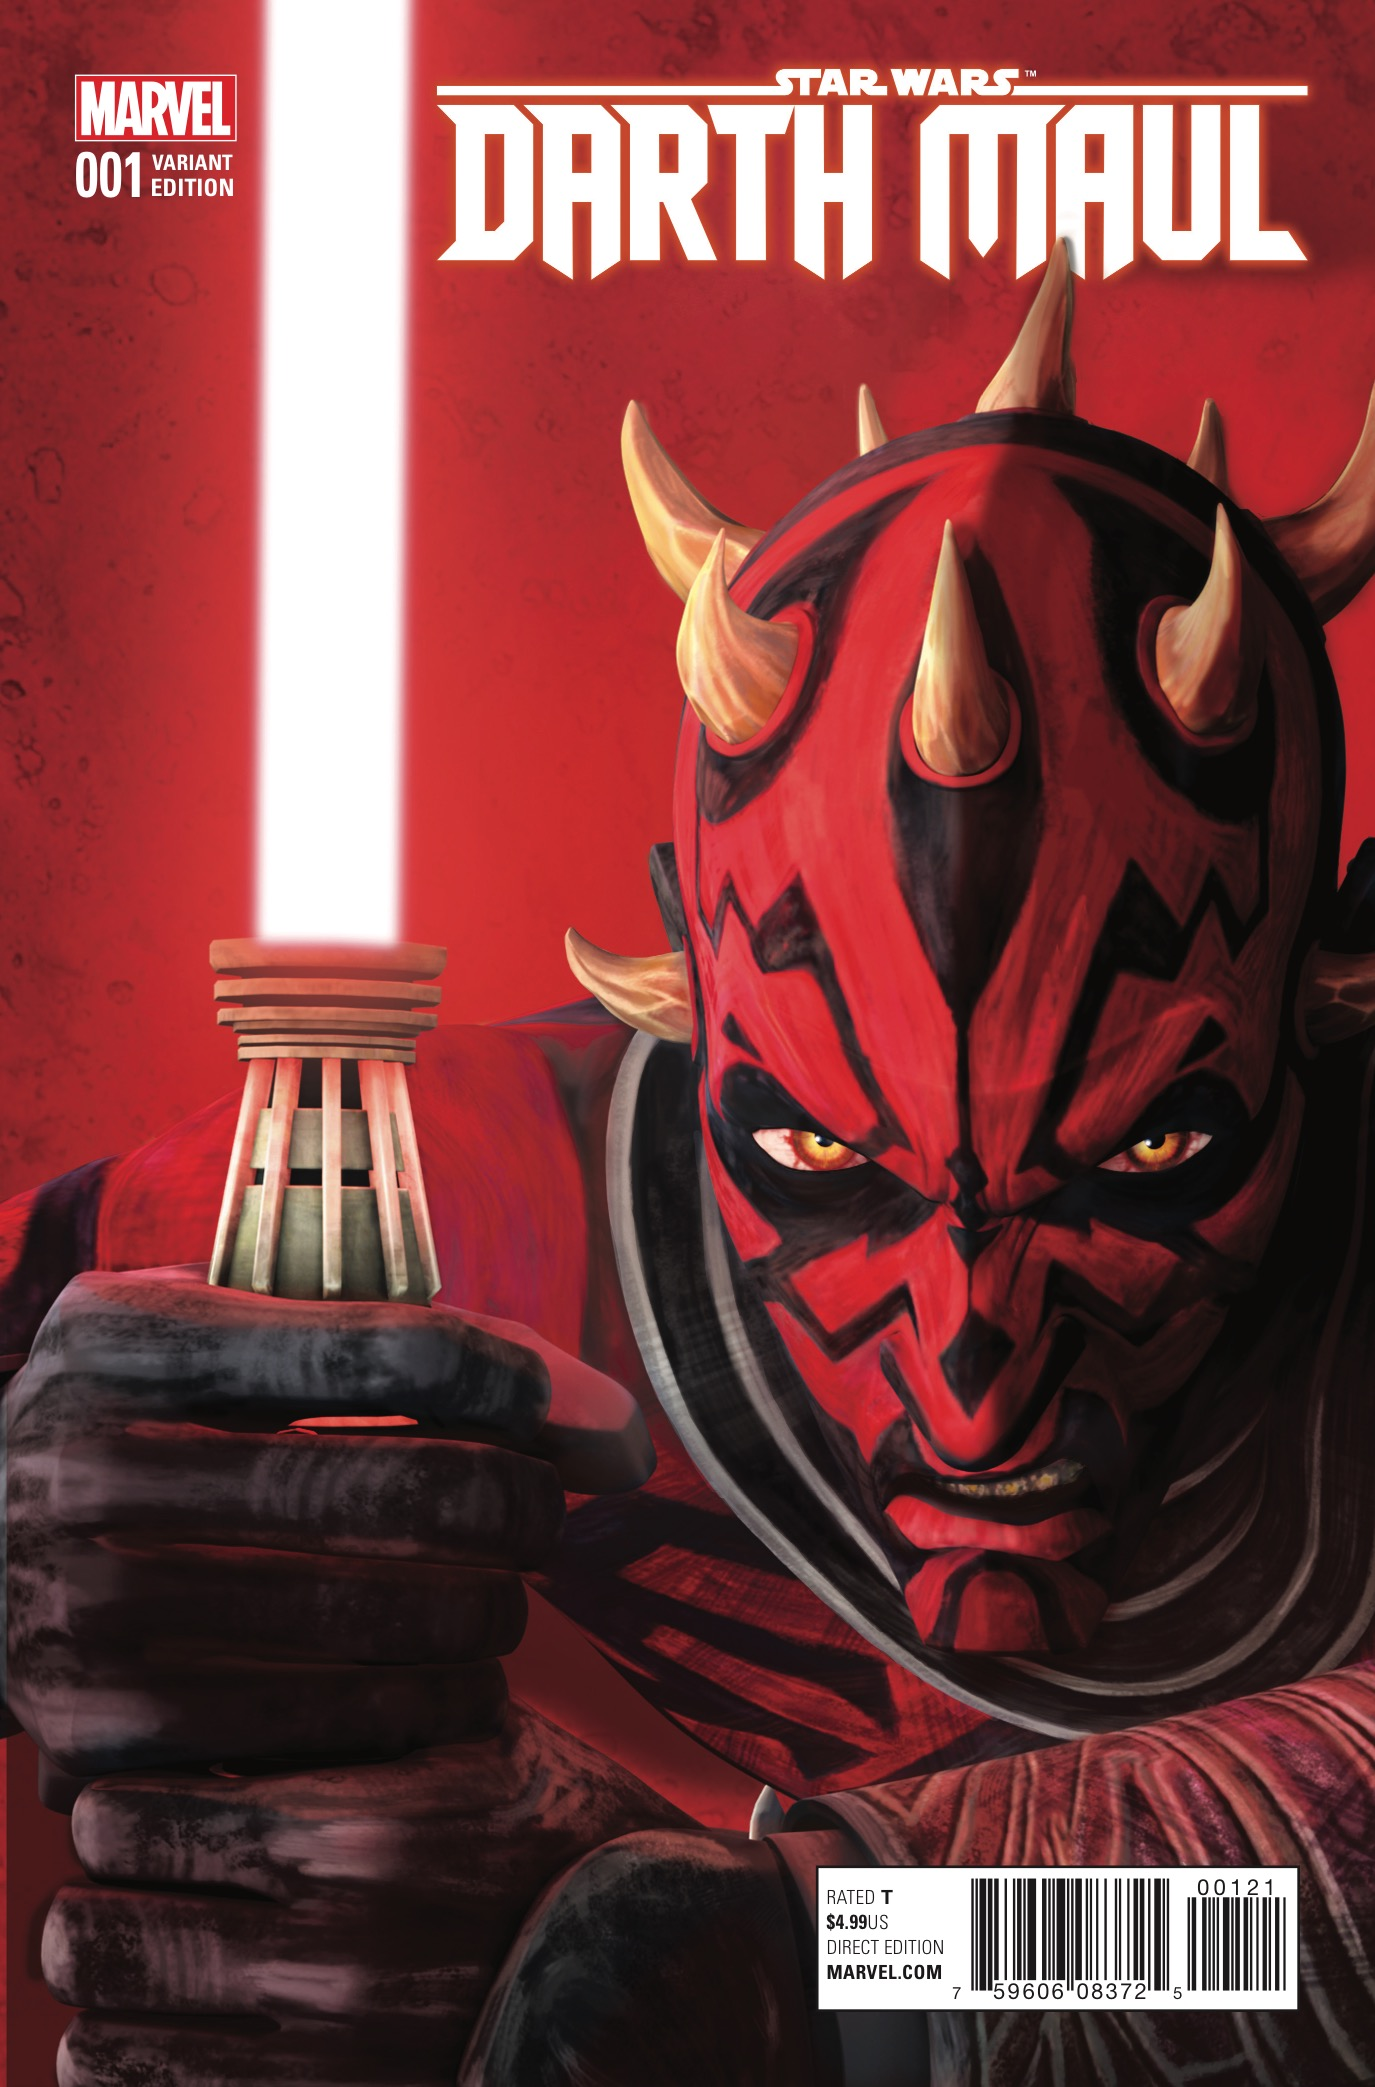 Marvel Preview: Star Wars: Darth Maul #1